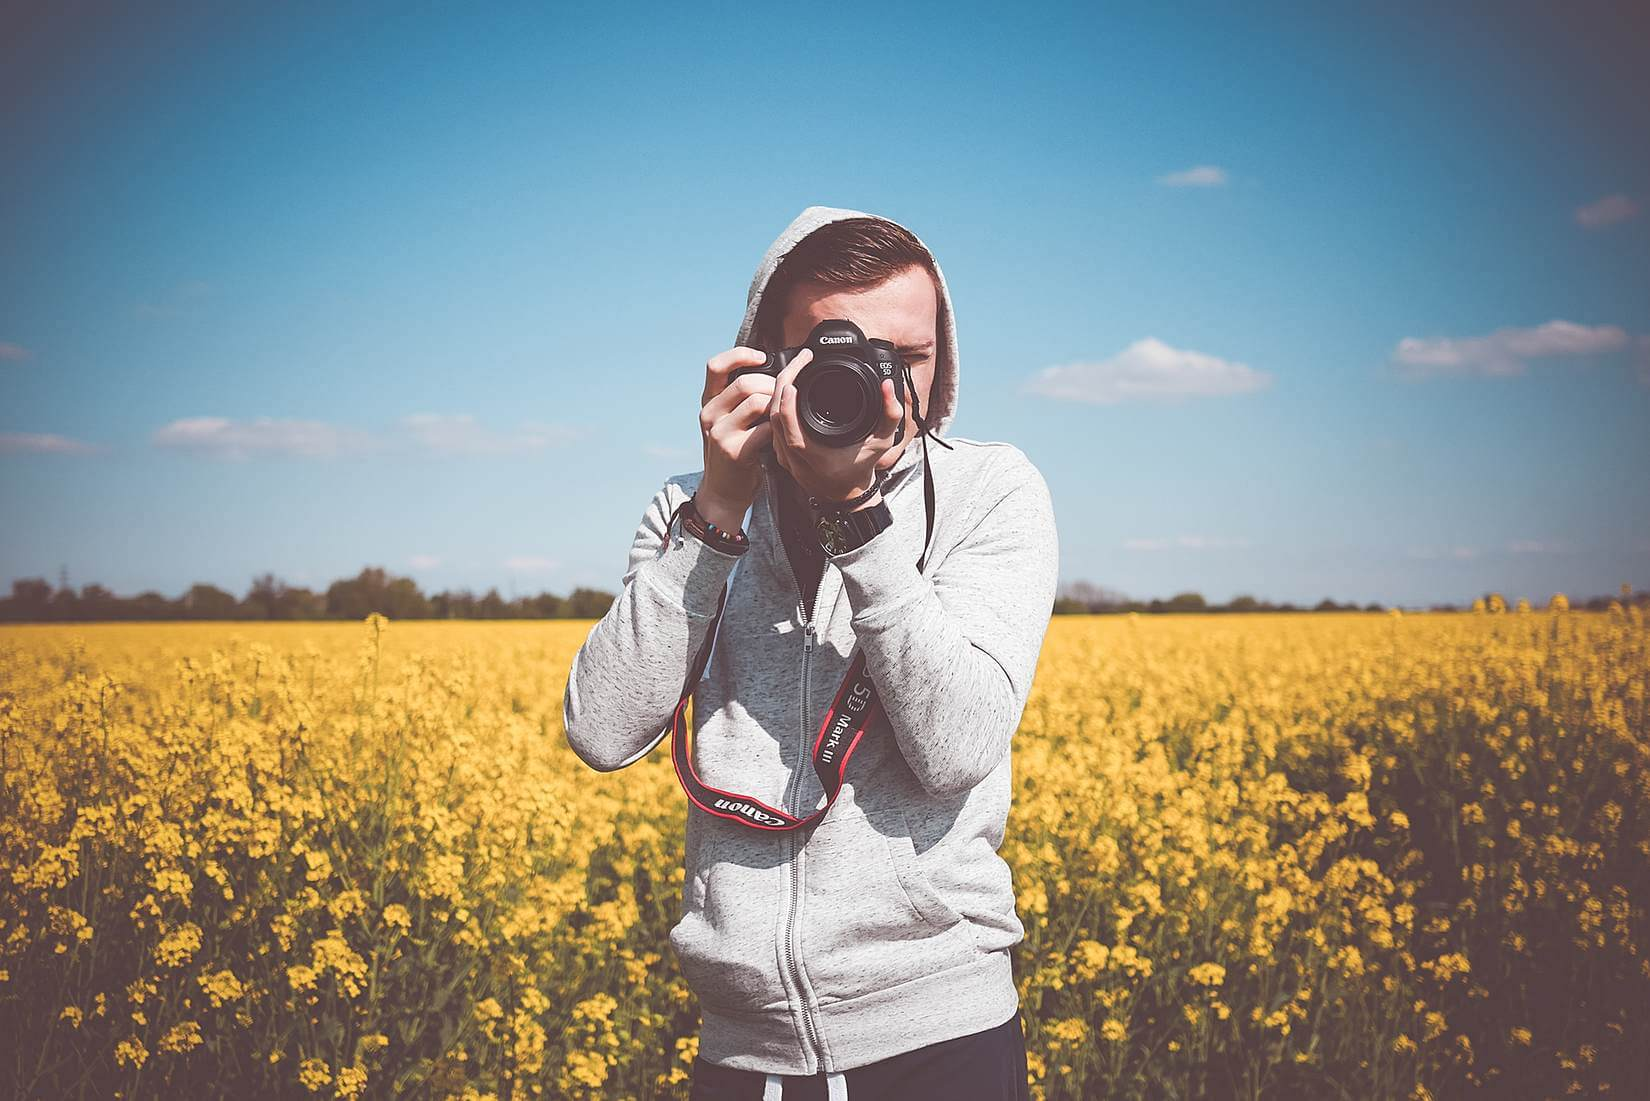 History of Photography and Nature